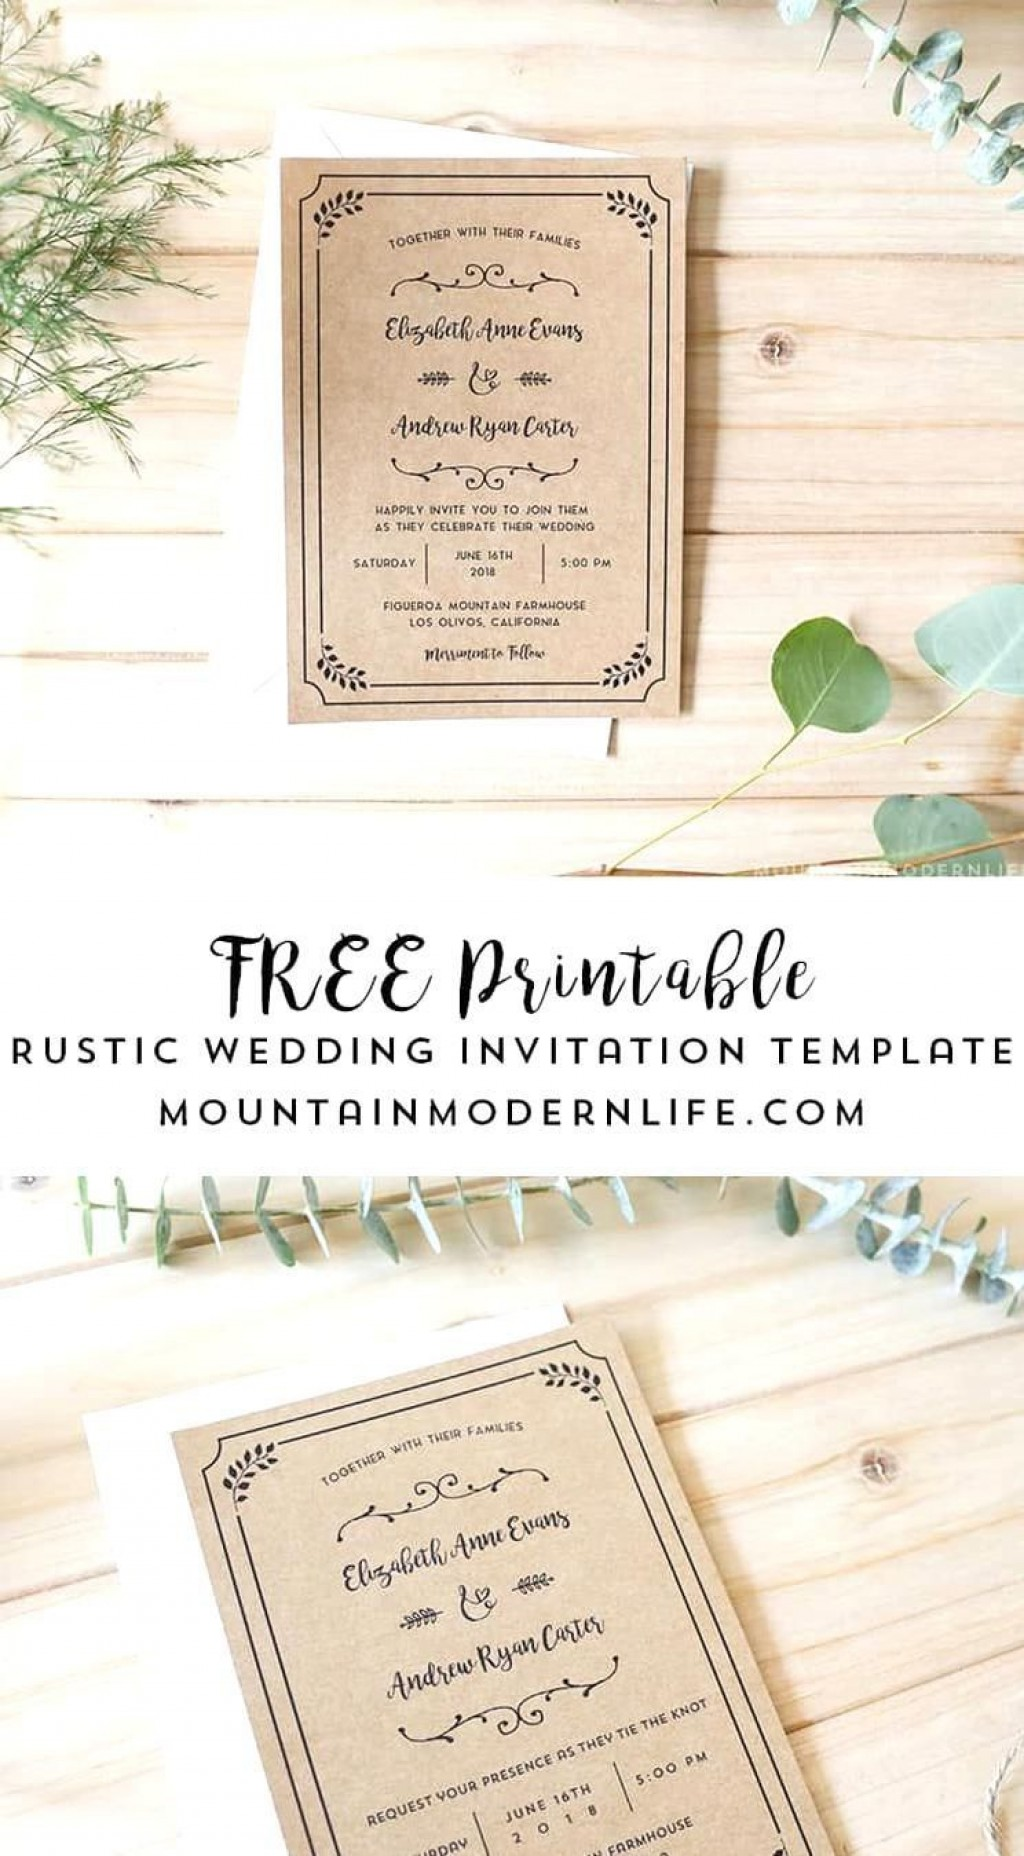 004 Stirring Rustic Wedding Invitation Template Photo  Templates Free For Word Maker PhotoshopLarge